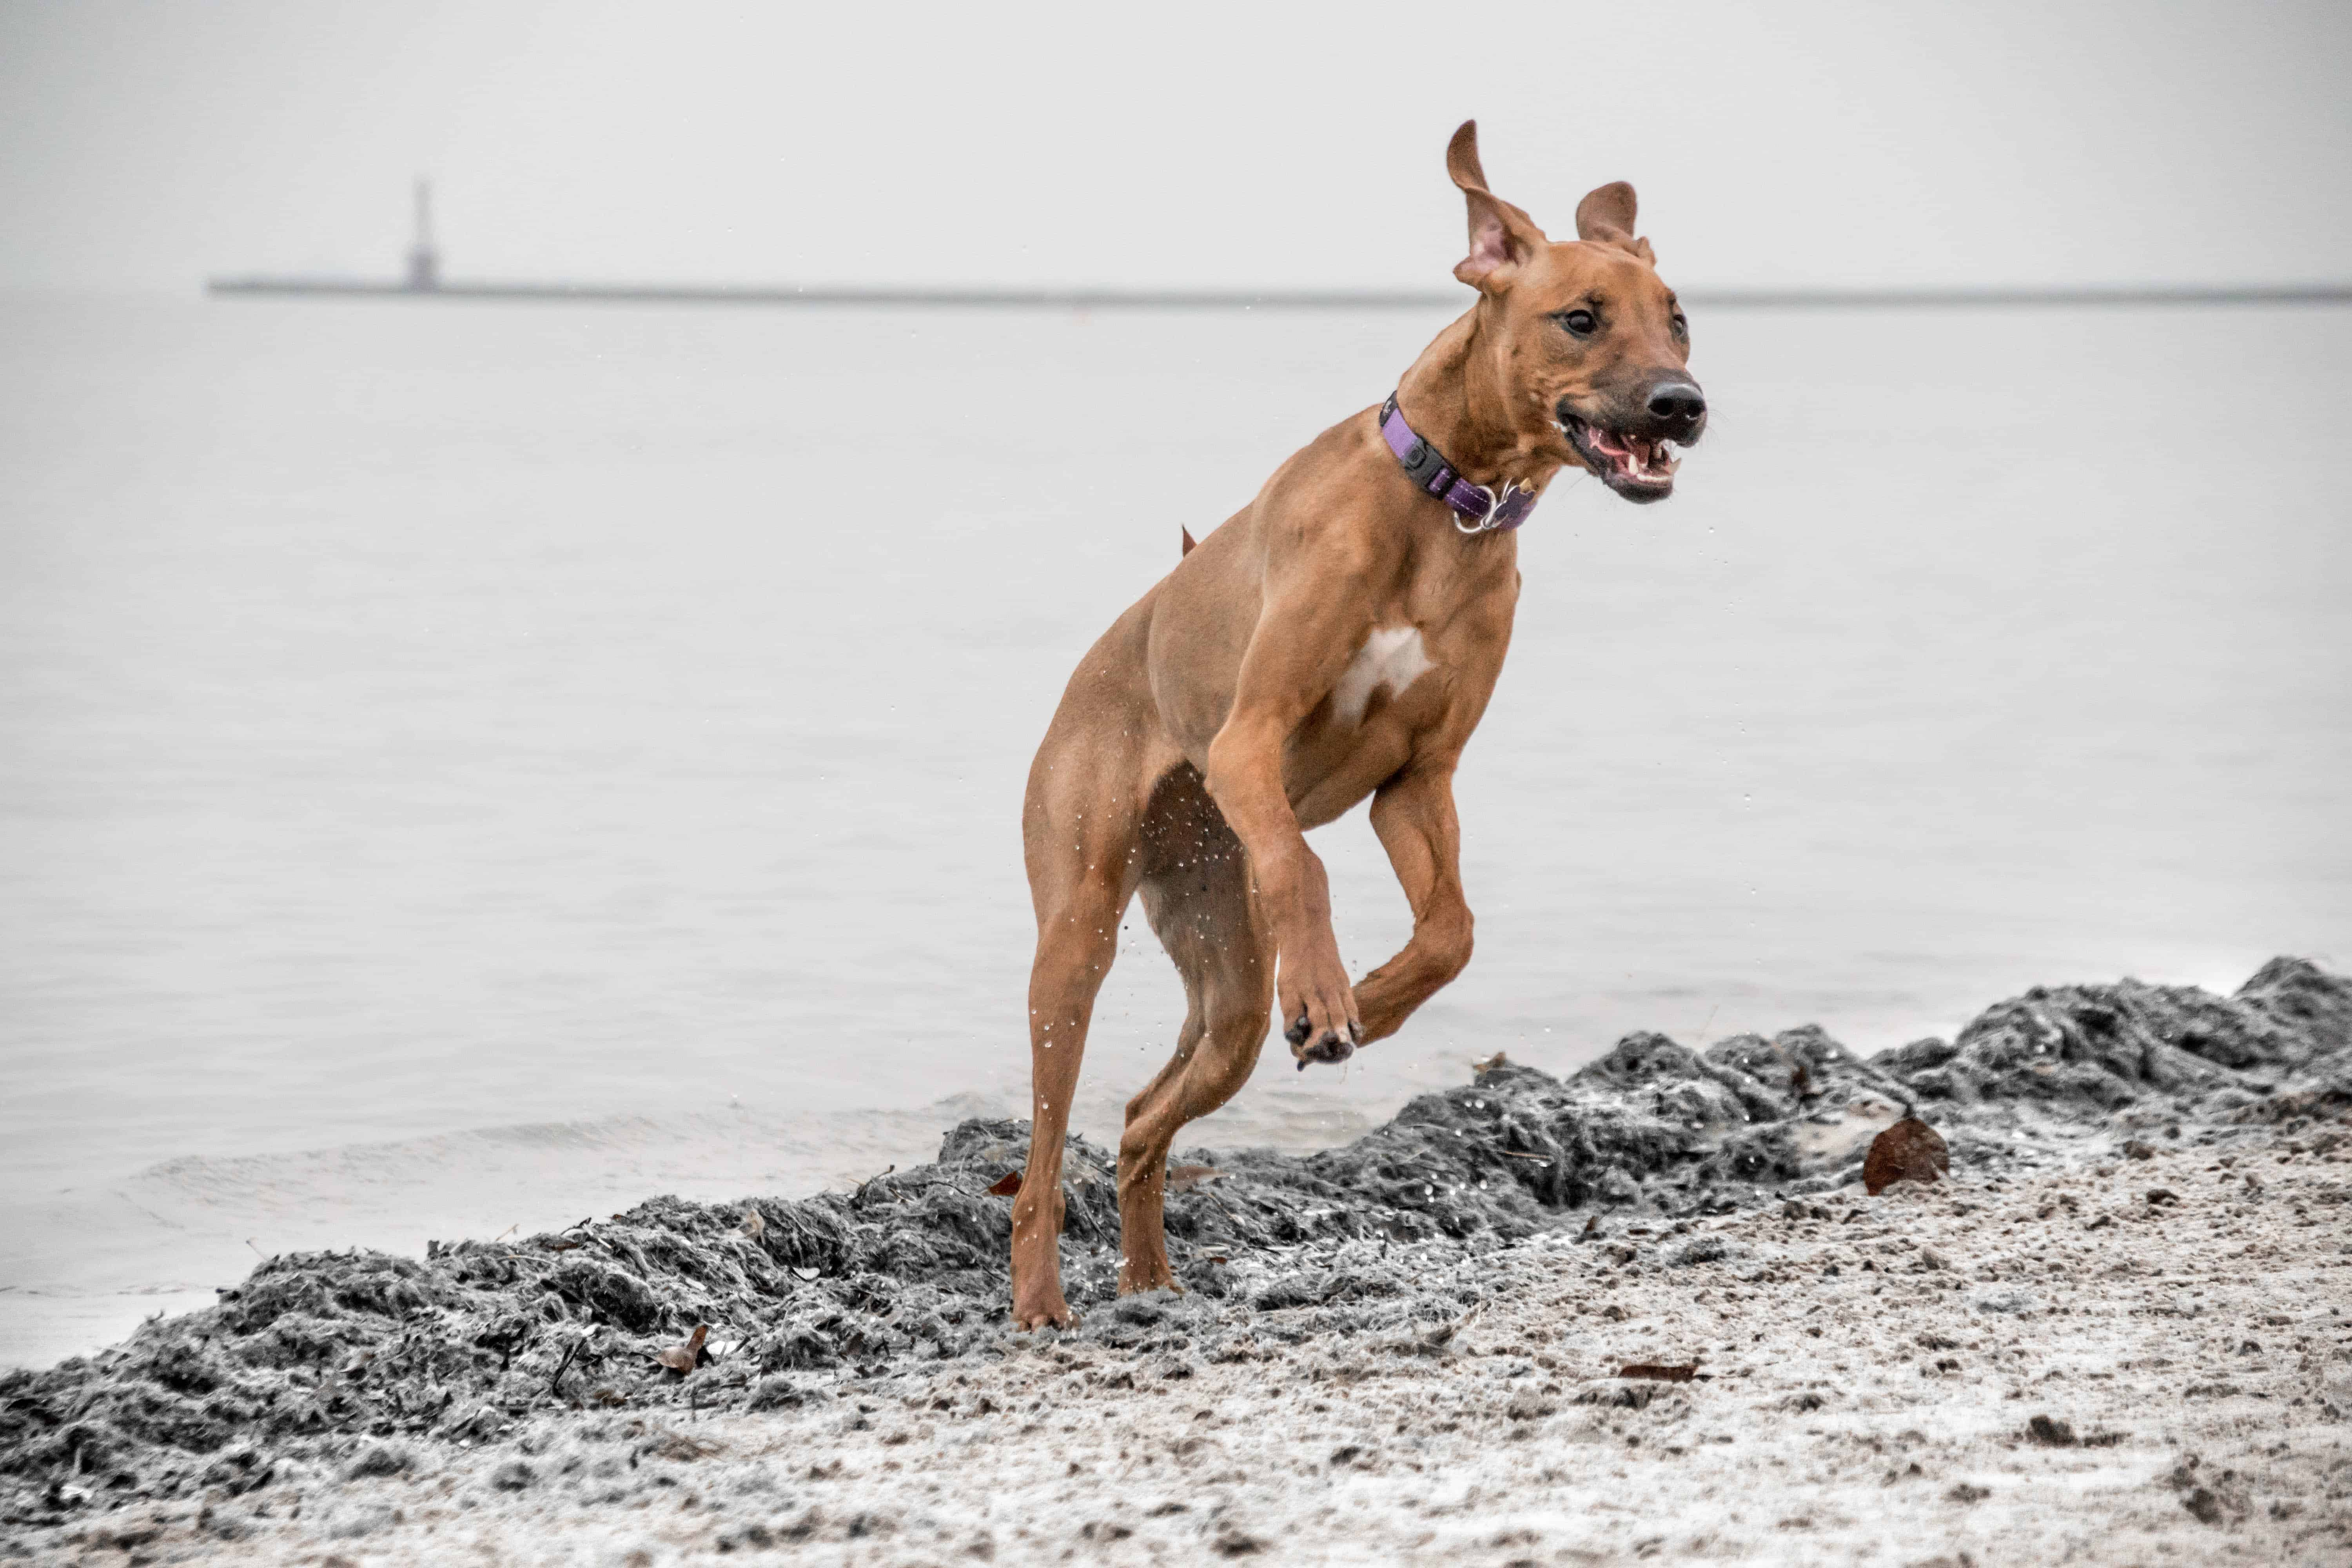 Rhodesian Ridgeback, puppy, beach, Chicago